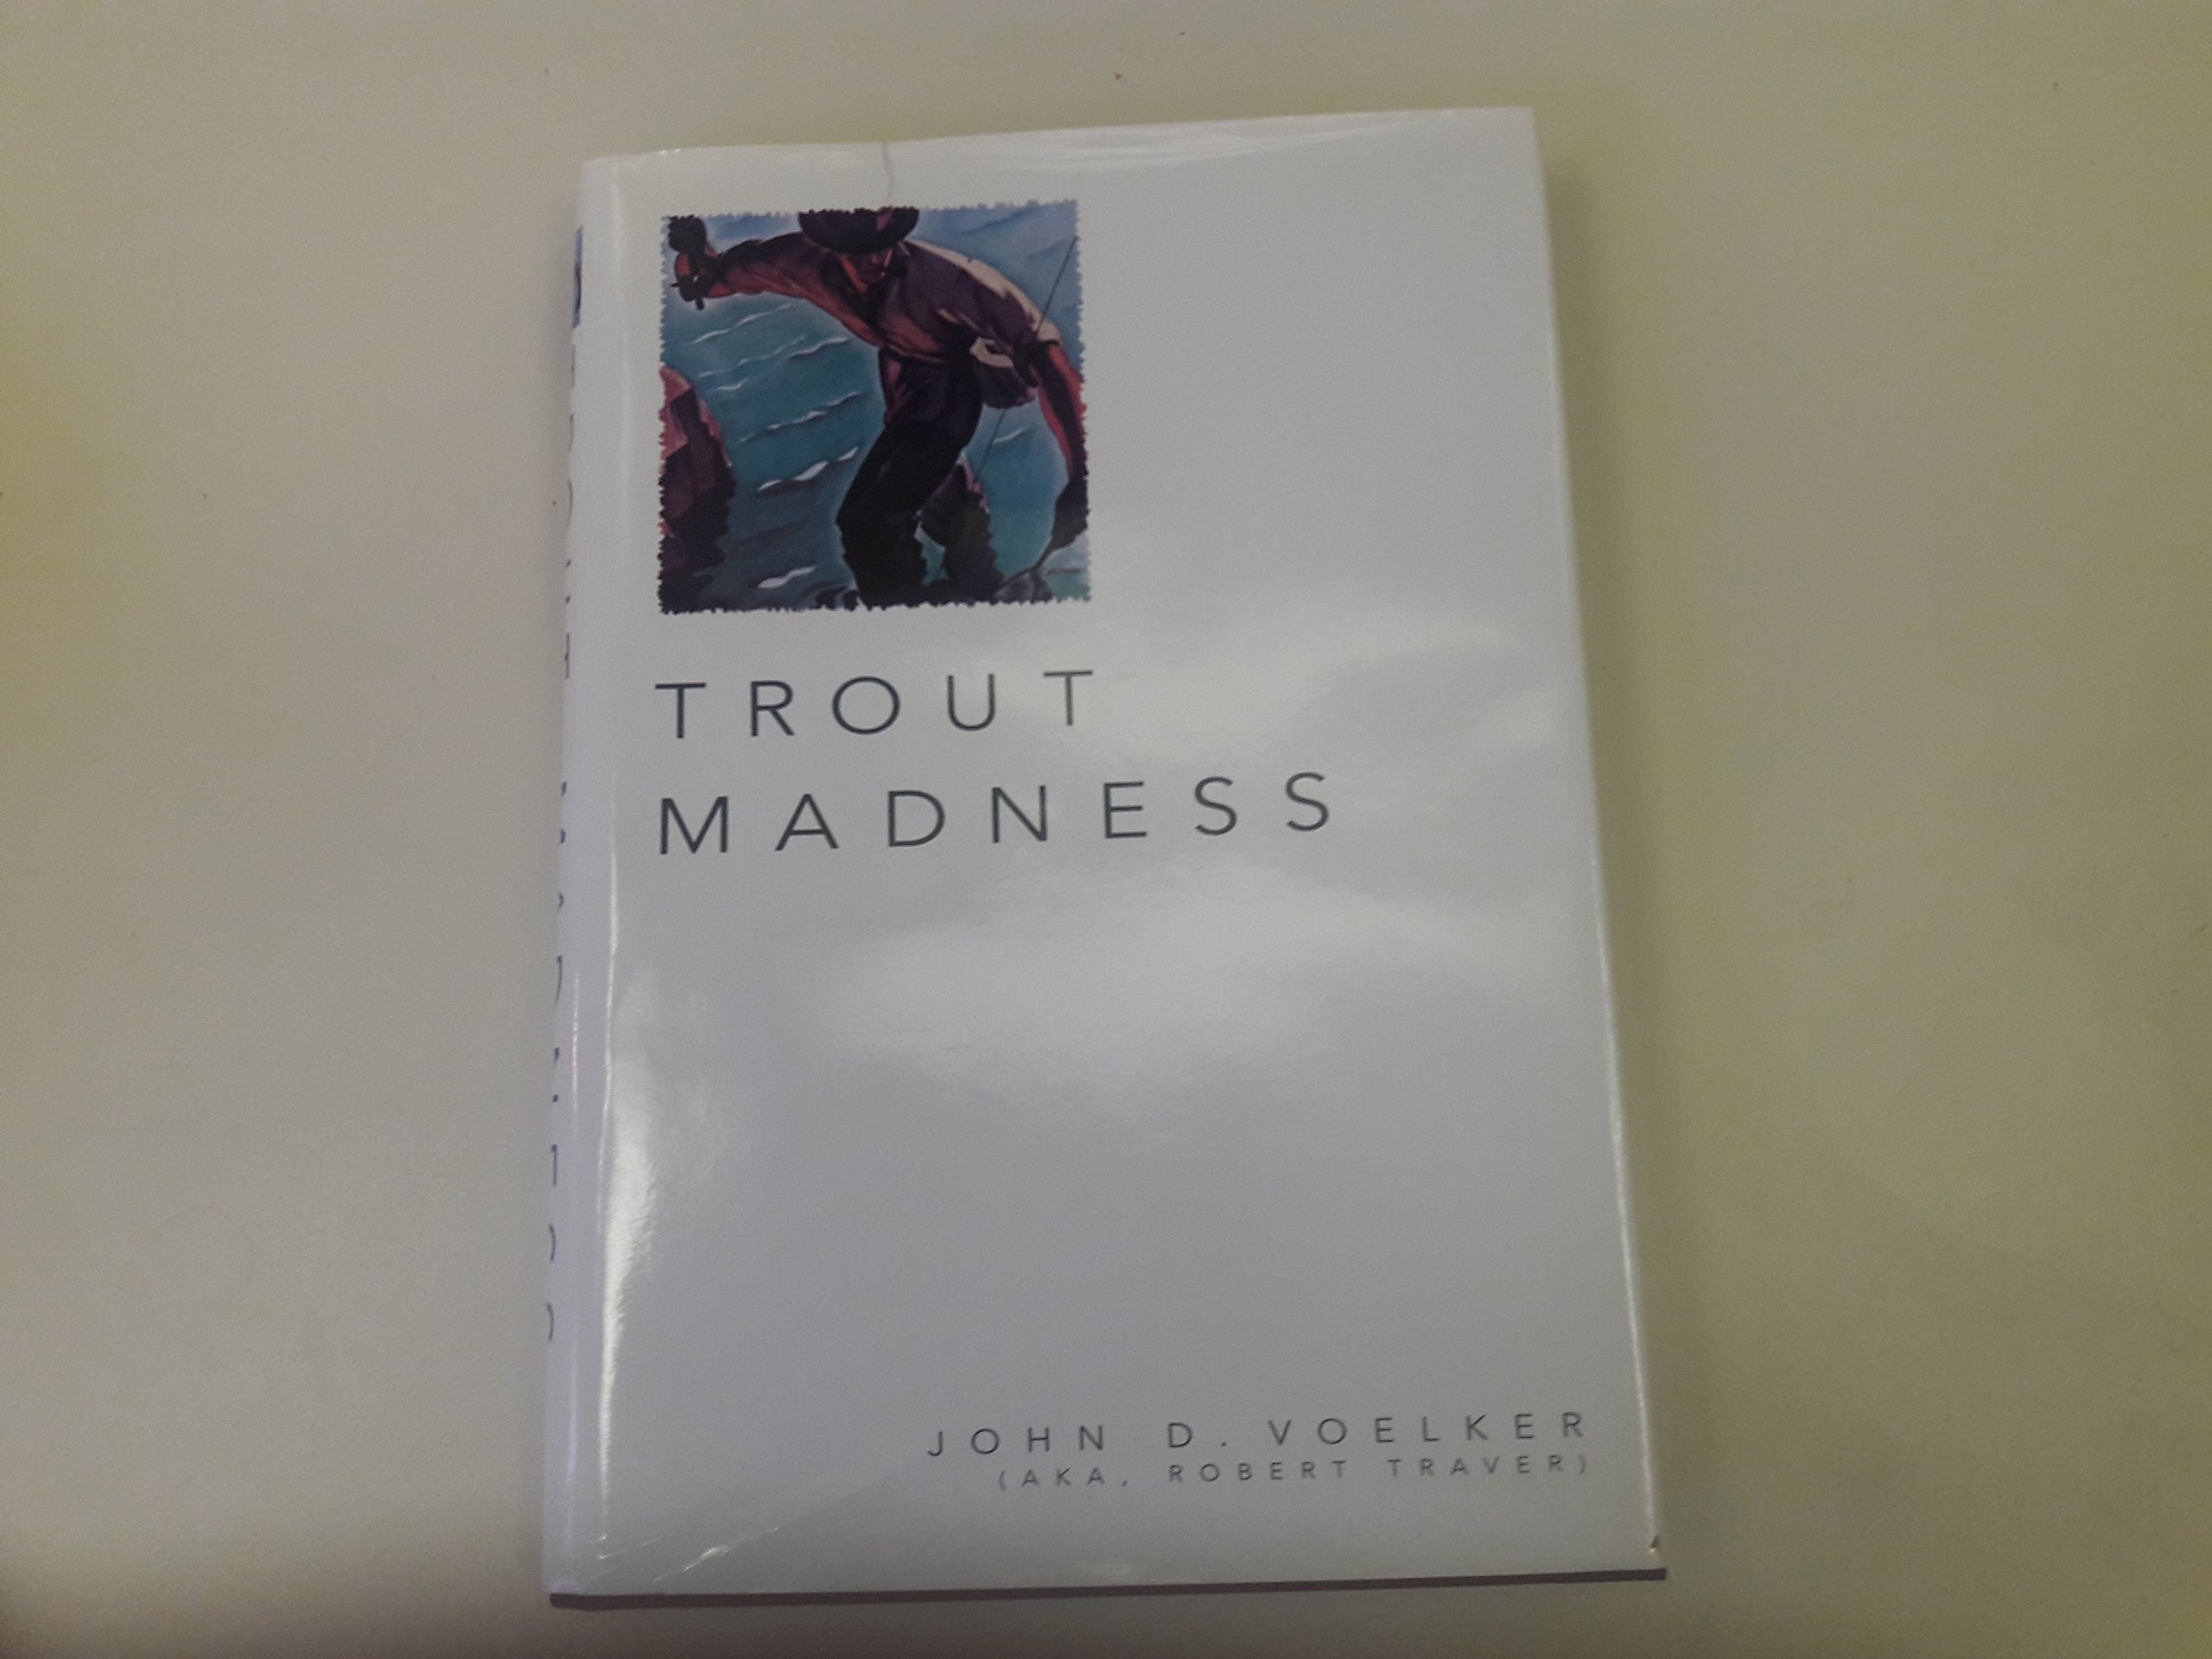 Trout madness first edition.